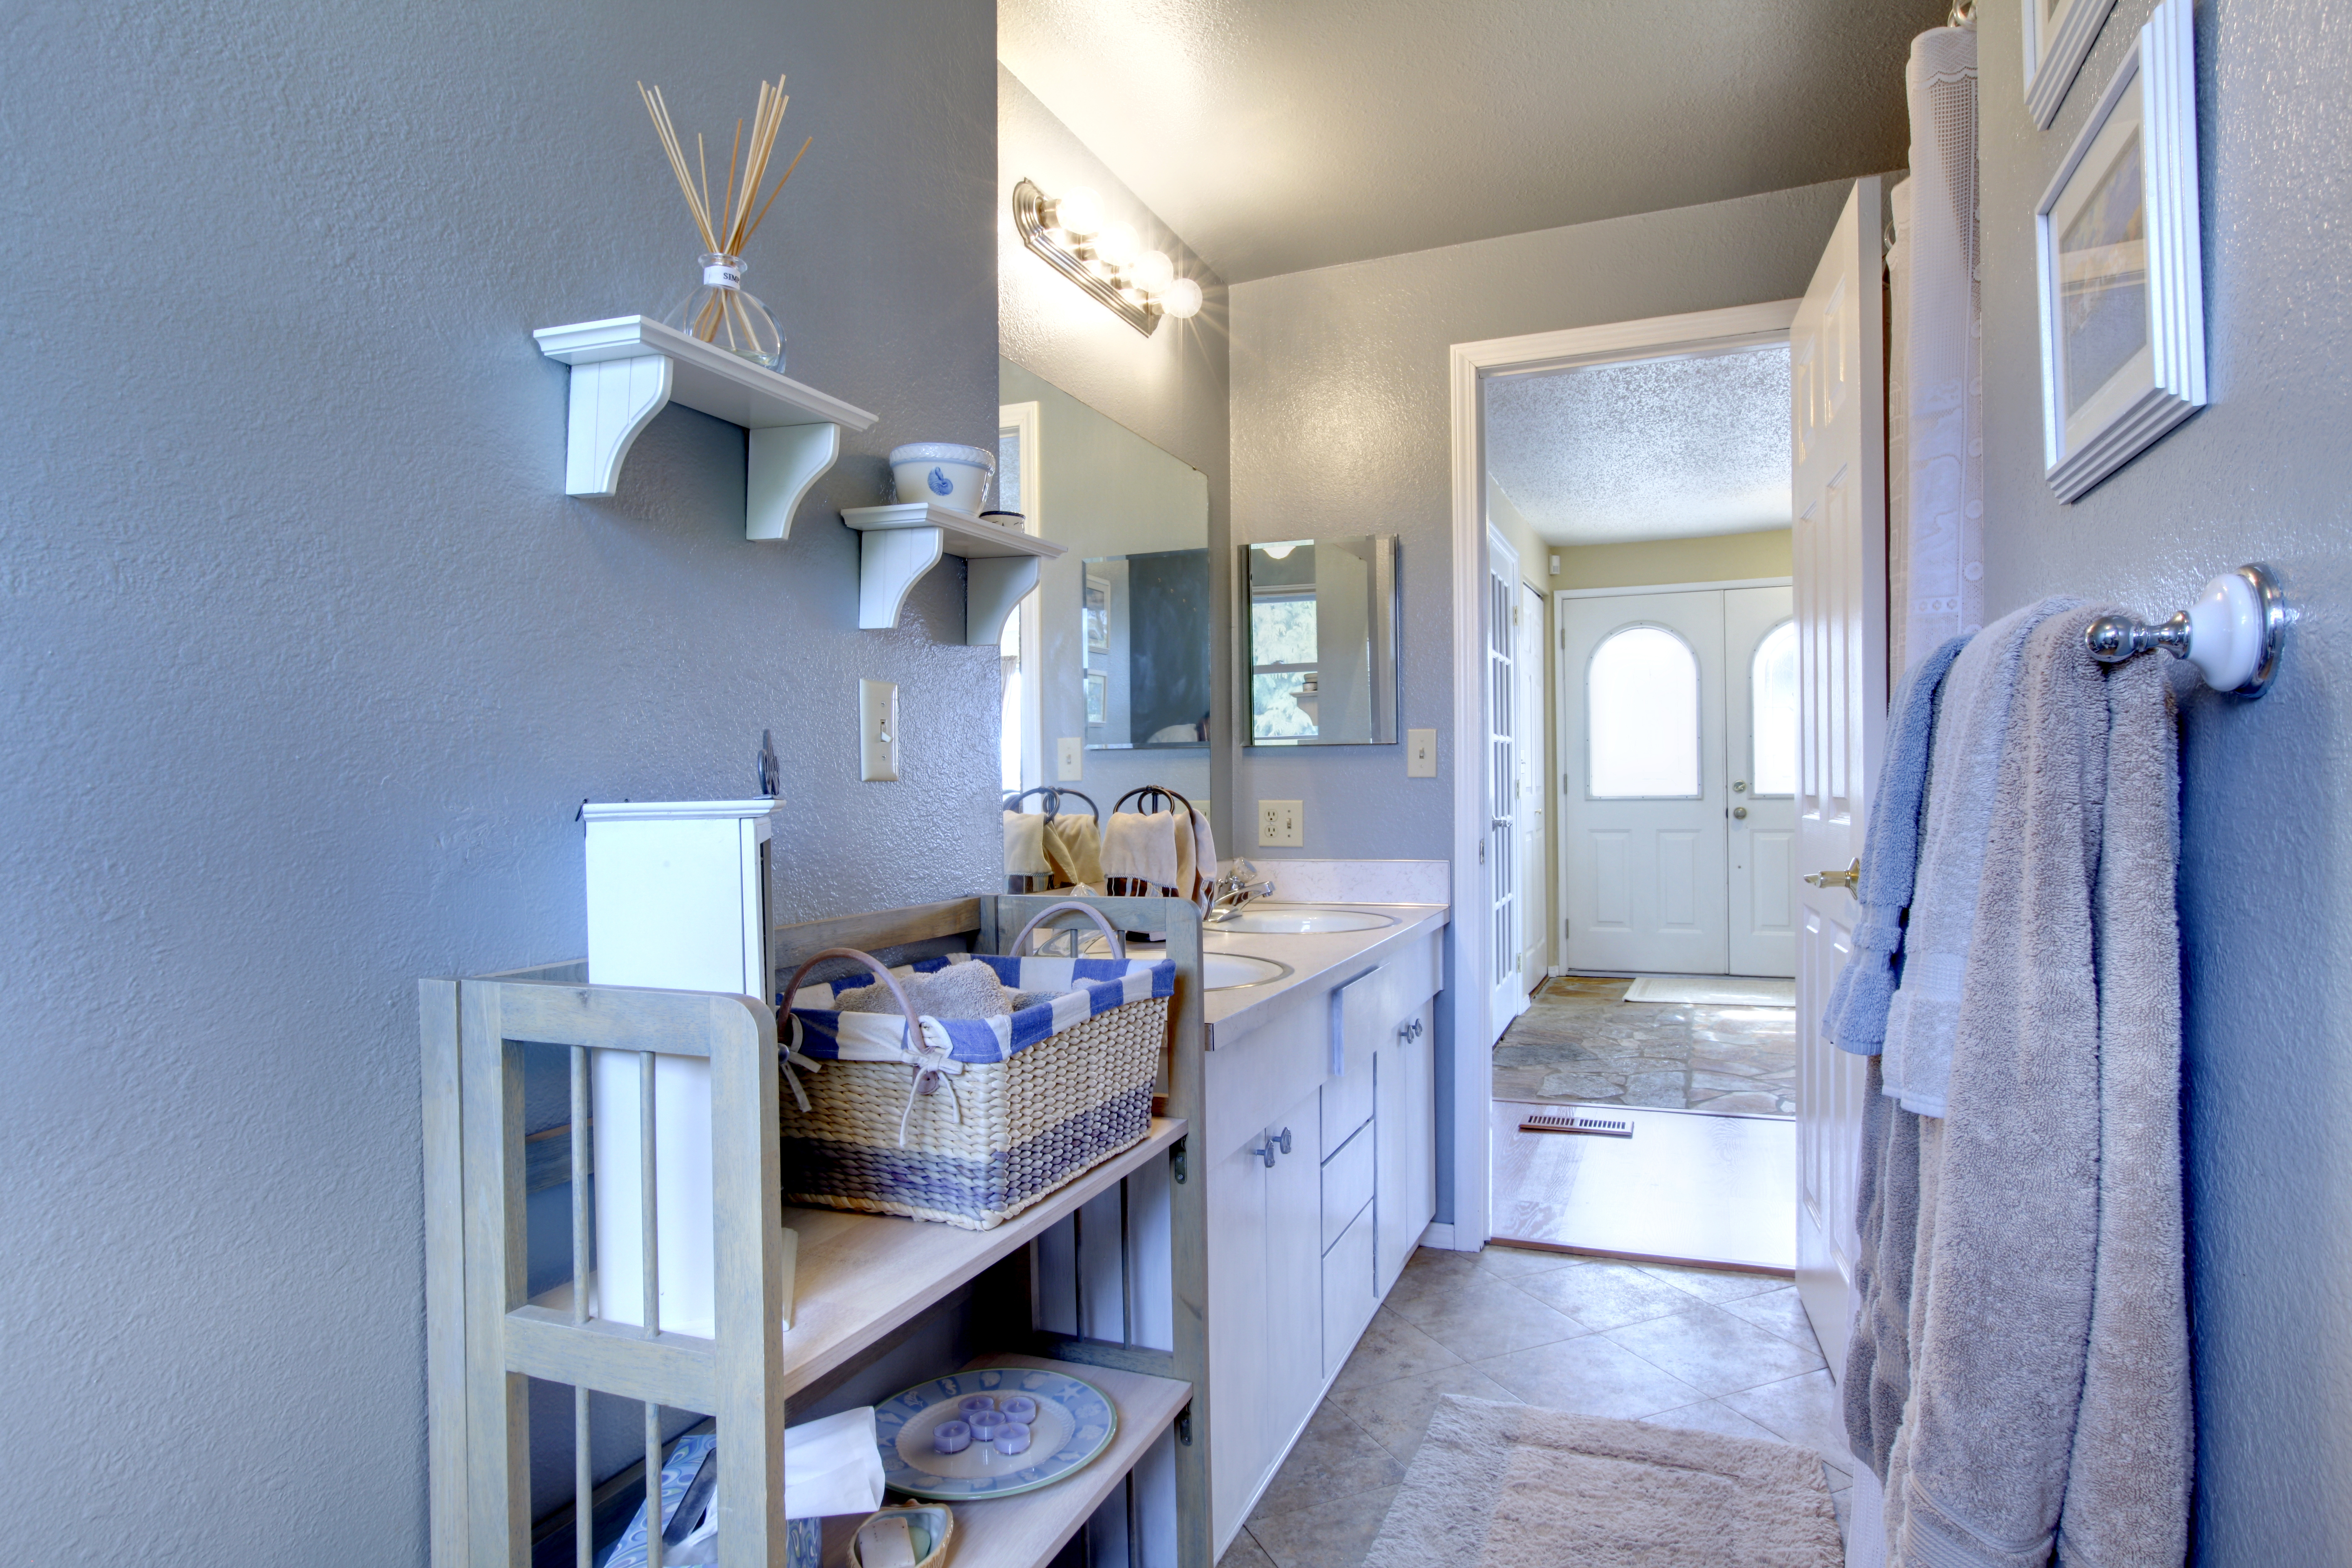 do storage in a stylish way for a small bathroom